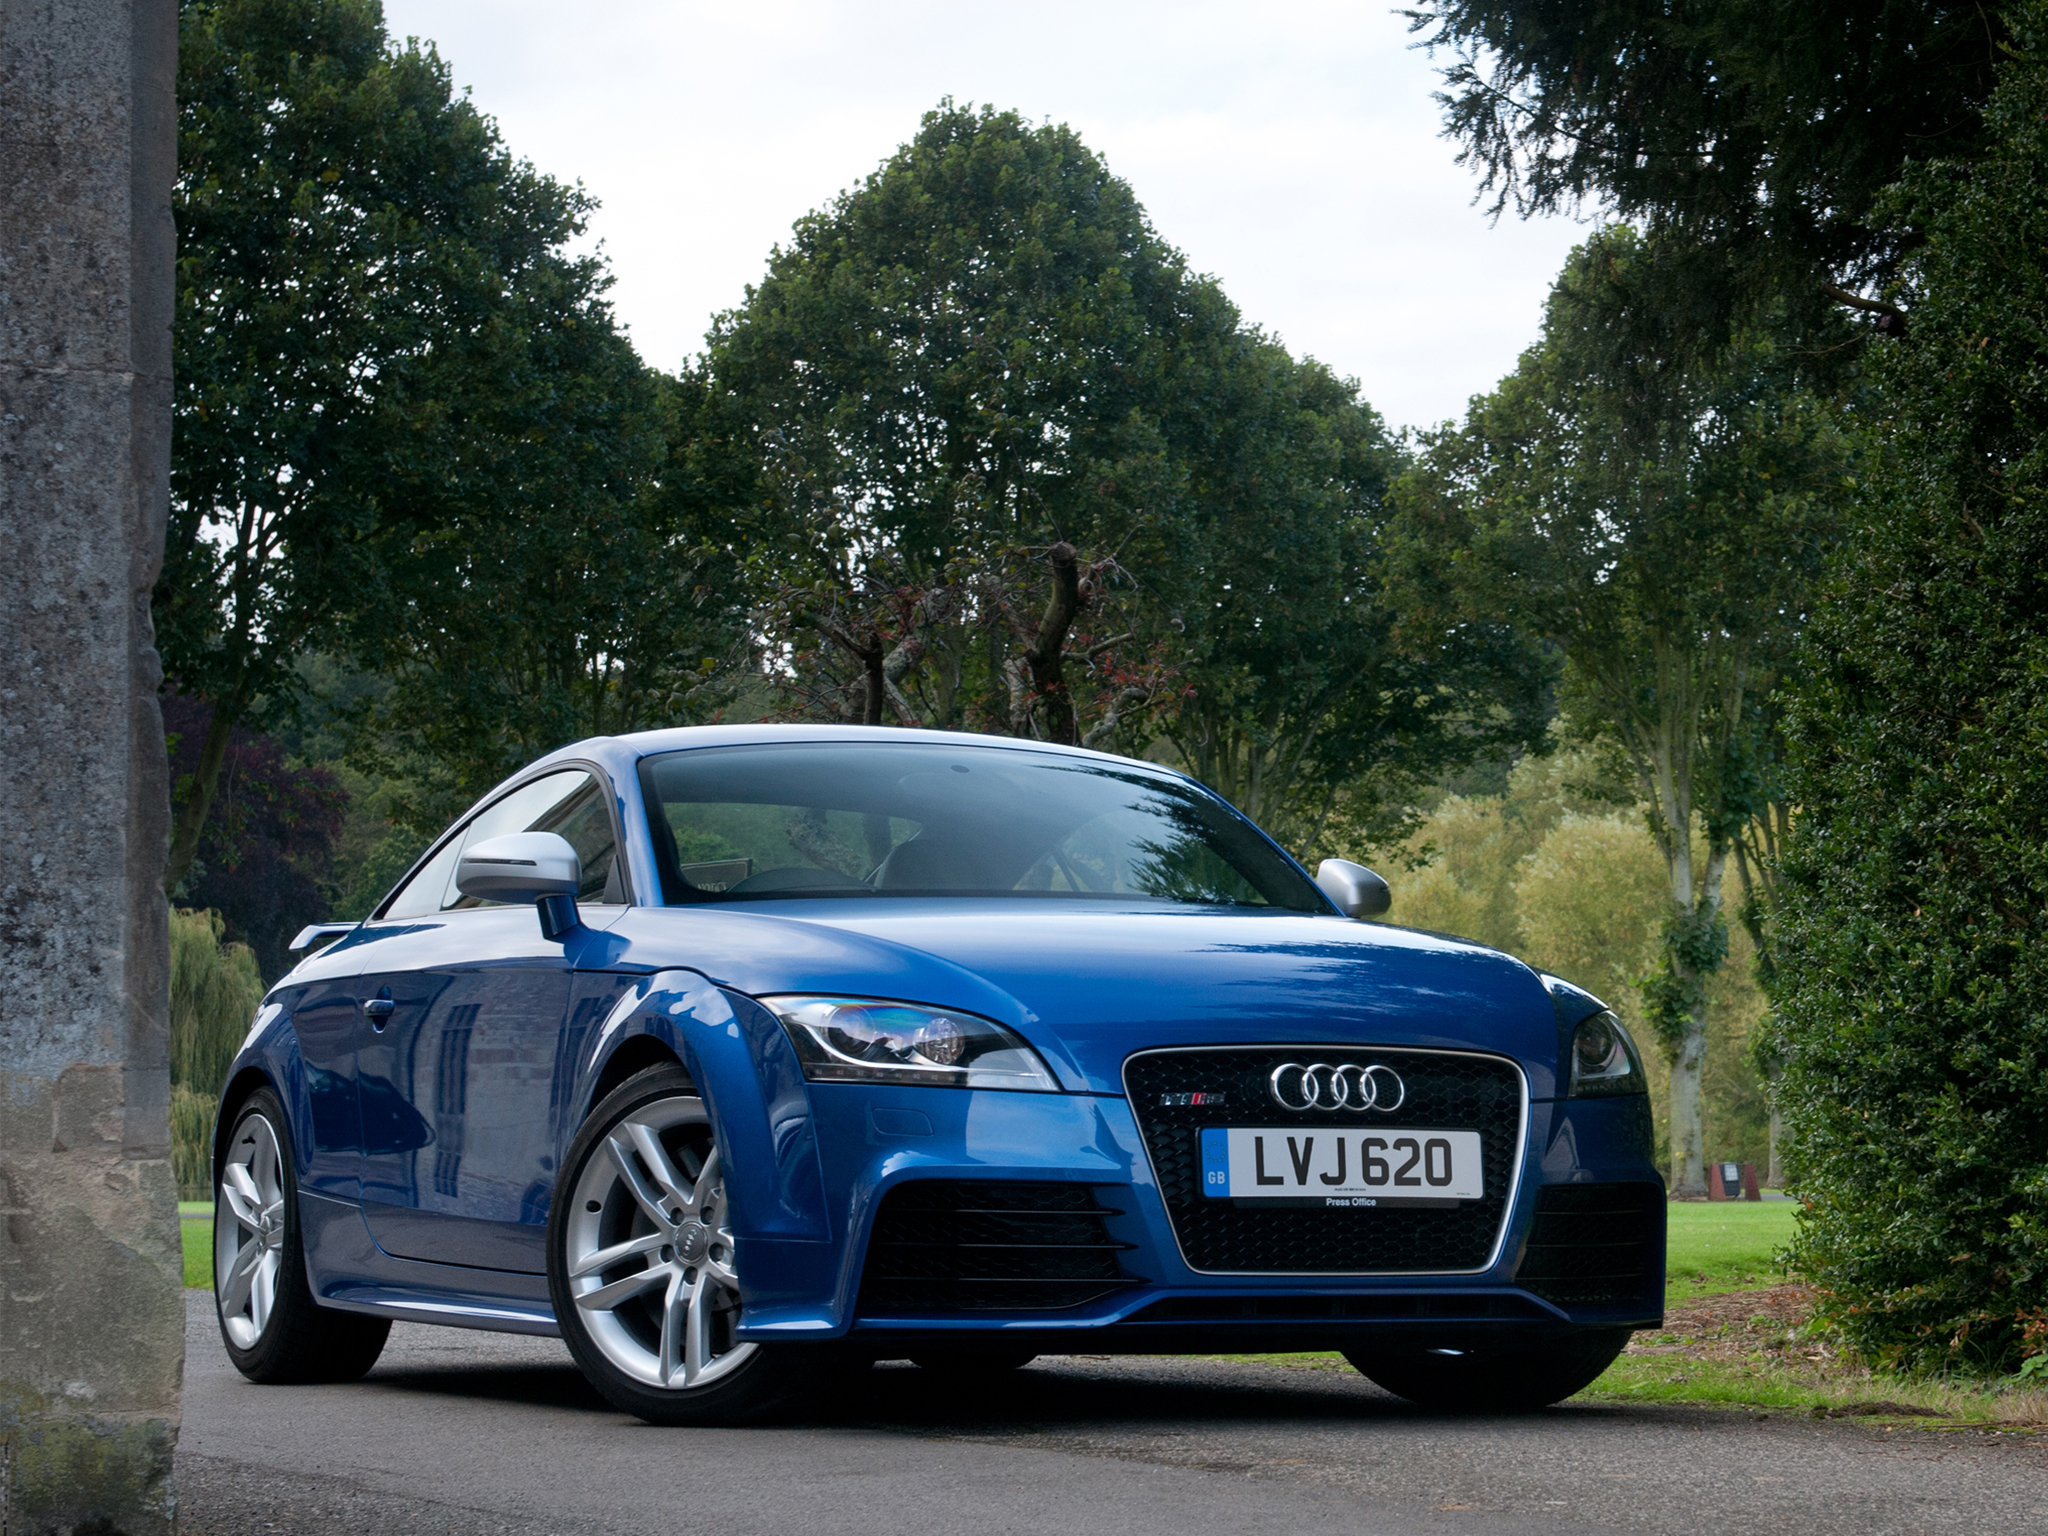 Audi TT RS plus Coupe UK-spec Wallpapers | Cool Cars Wallpaper